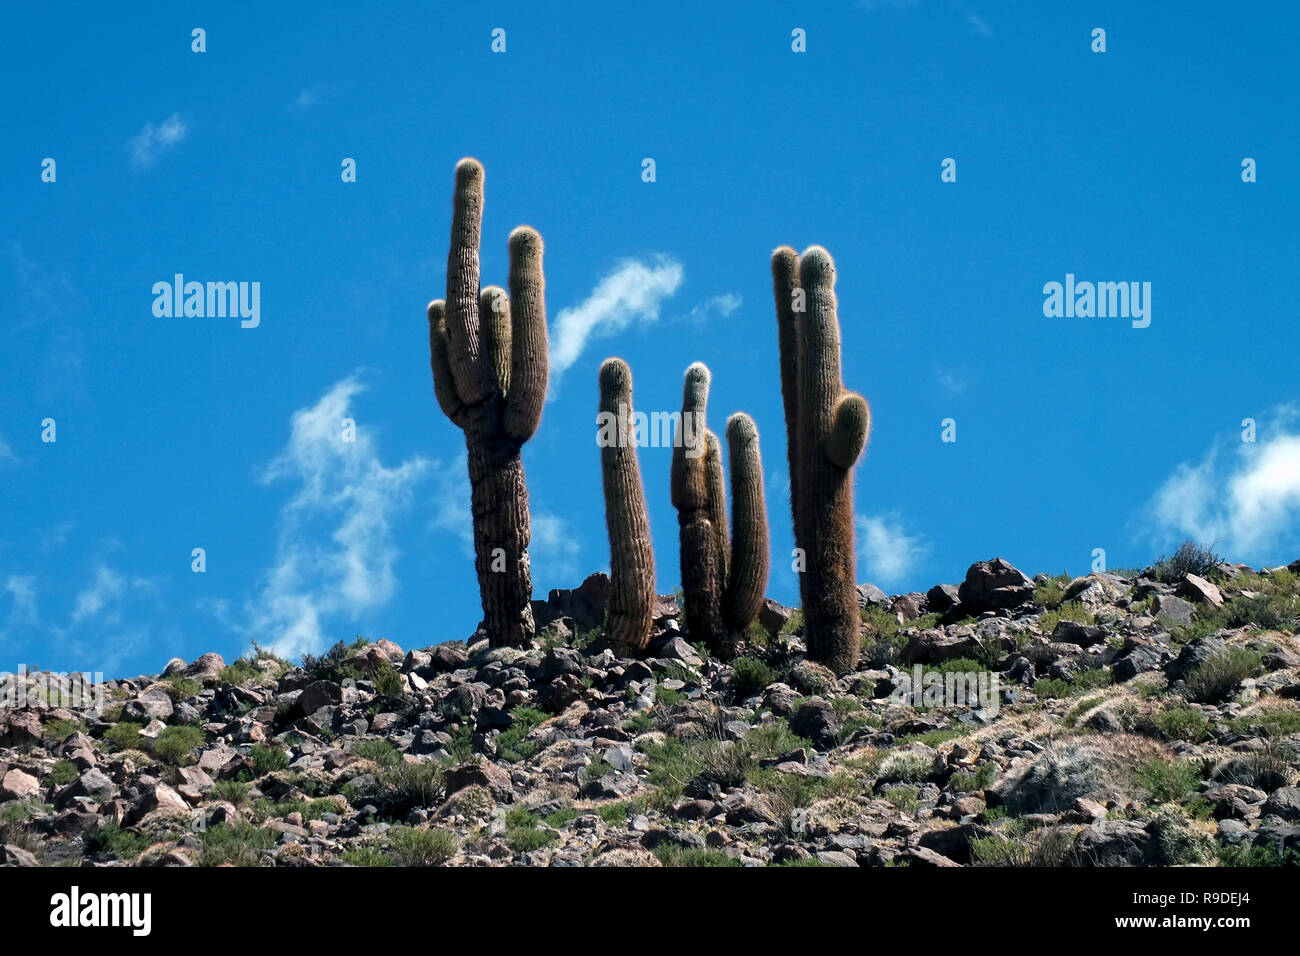 Four picturesque cactus in the Atacama desert that look like hands whose finger point to the blue sky. Chile, South America. - Stock Image